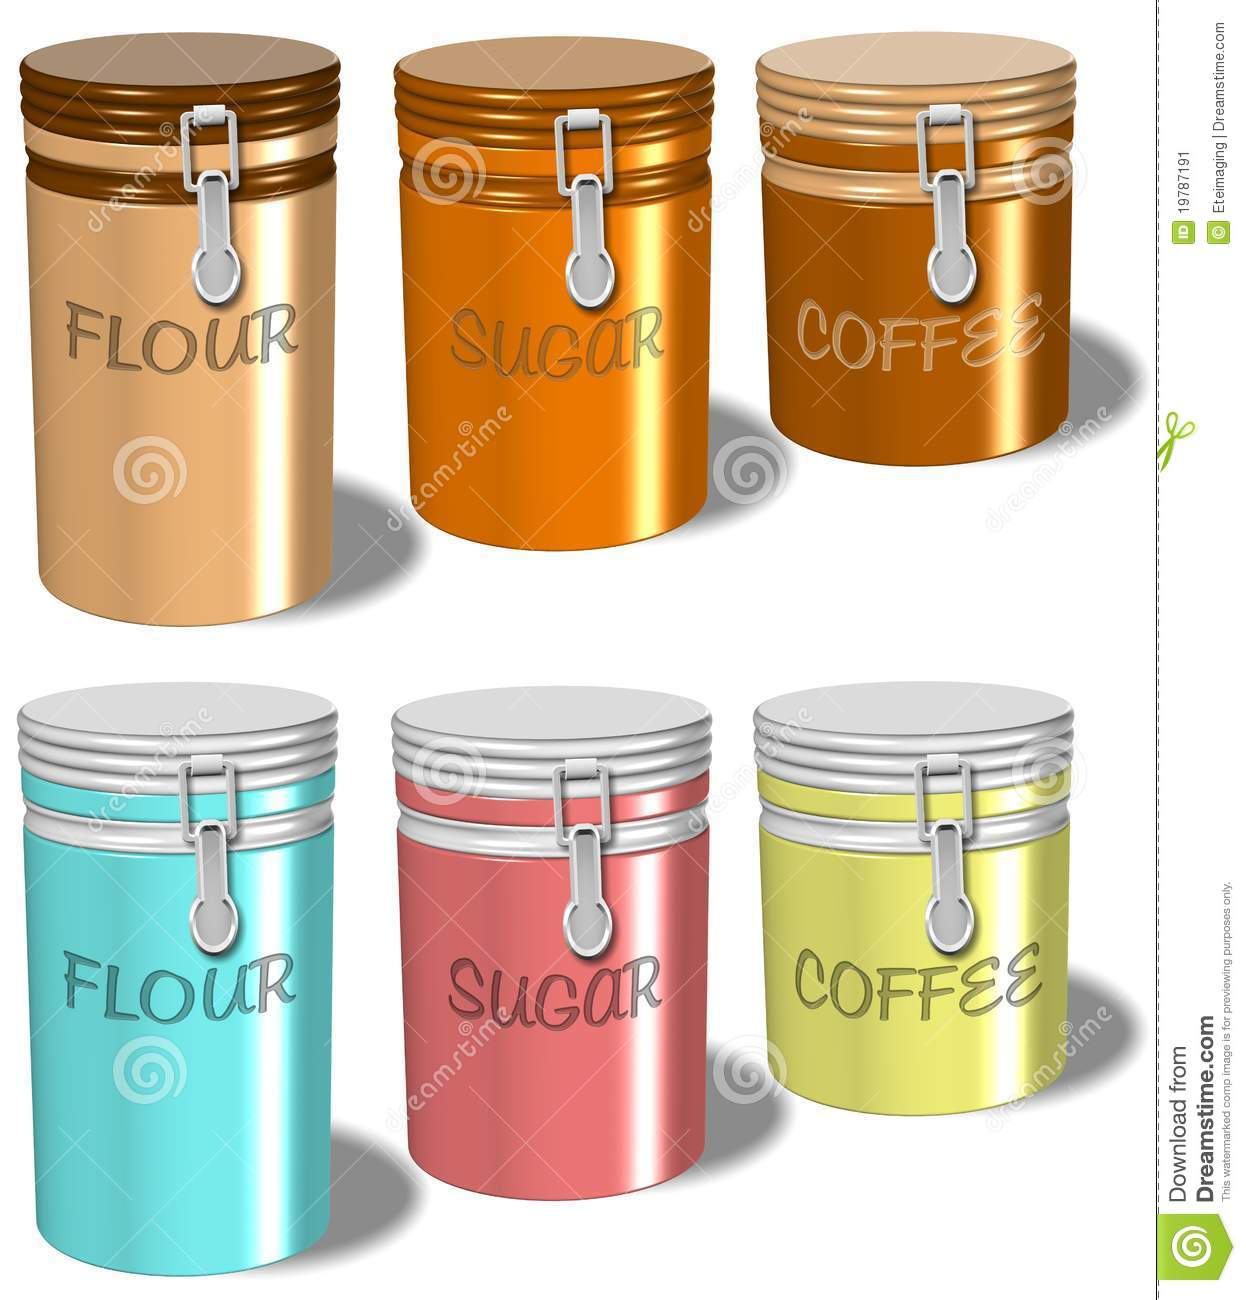 flour sugar coffee containers stock illustration illustration of sugar product 19787191. Black Bedroom Furniture Sets. Home Design Ideas